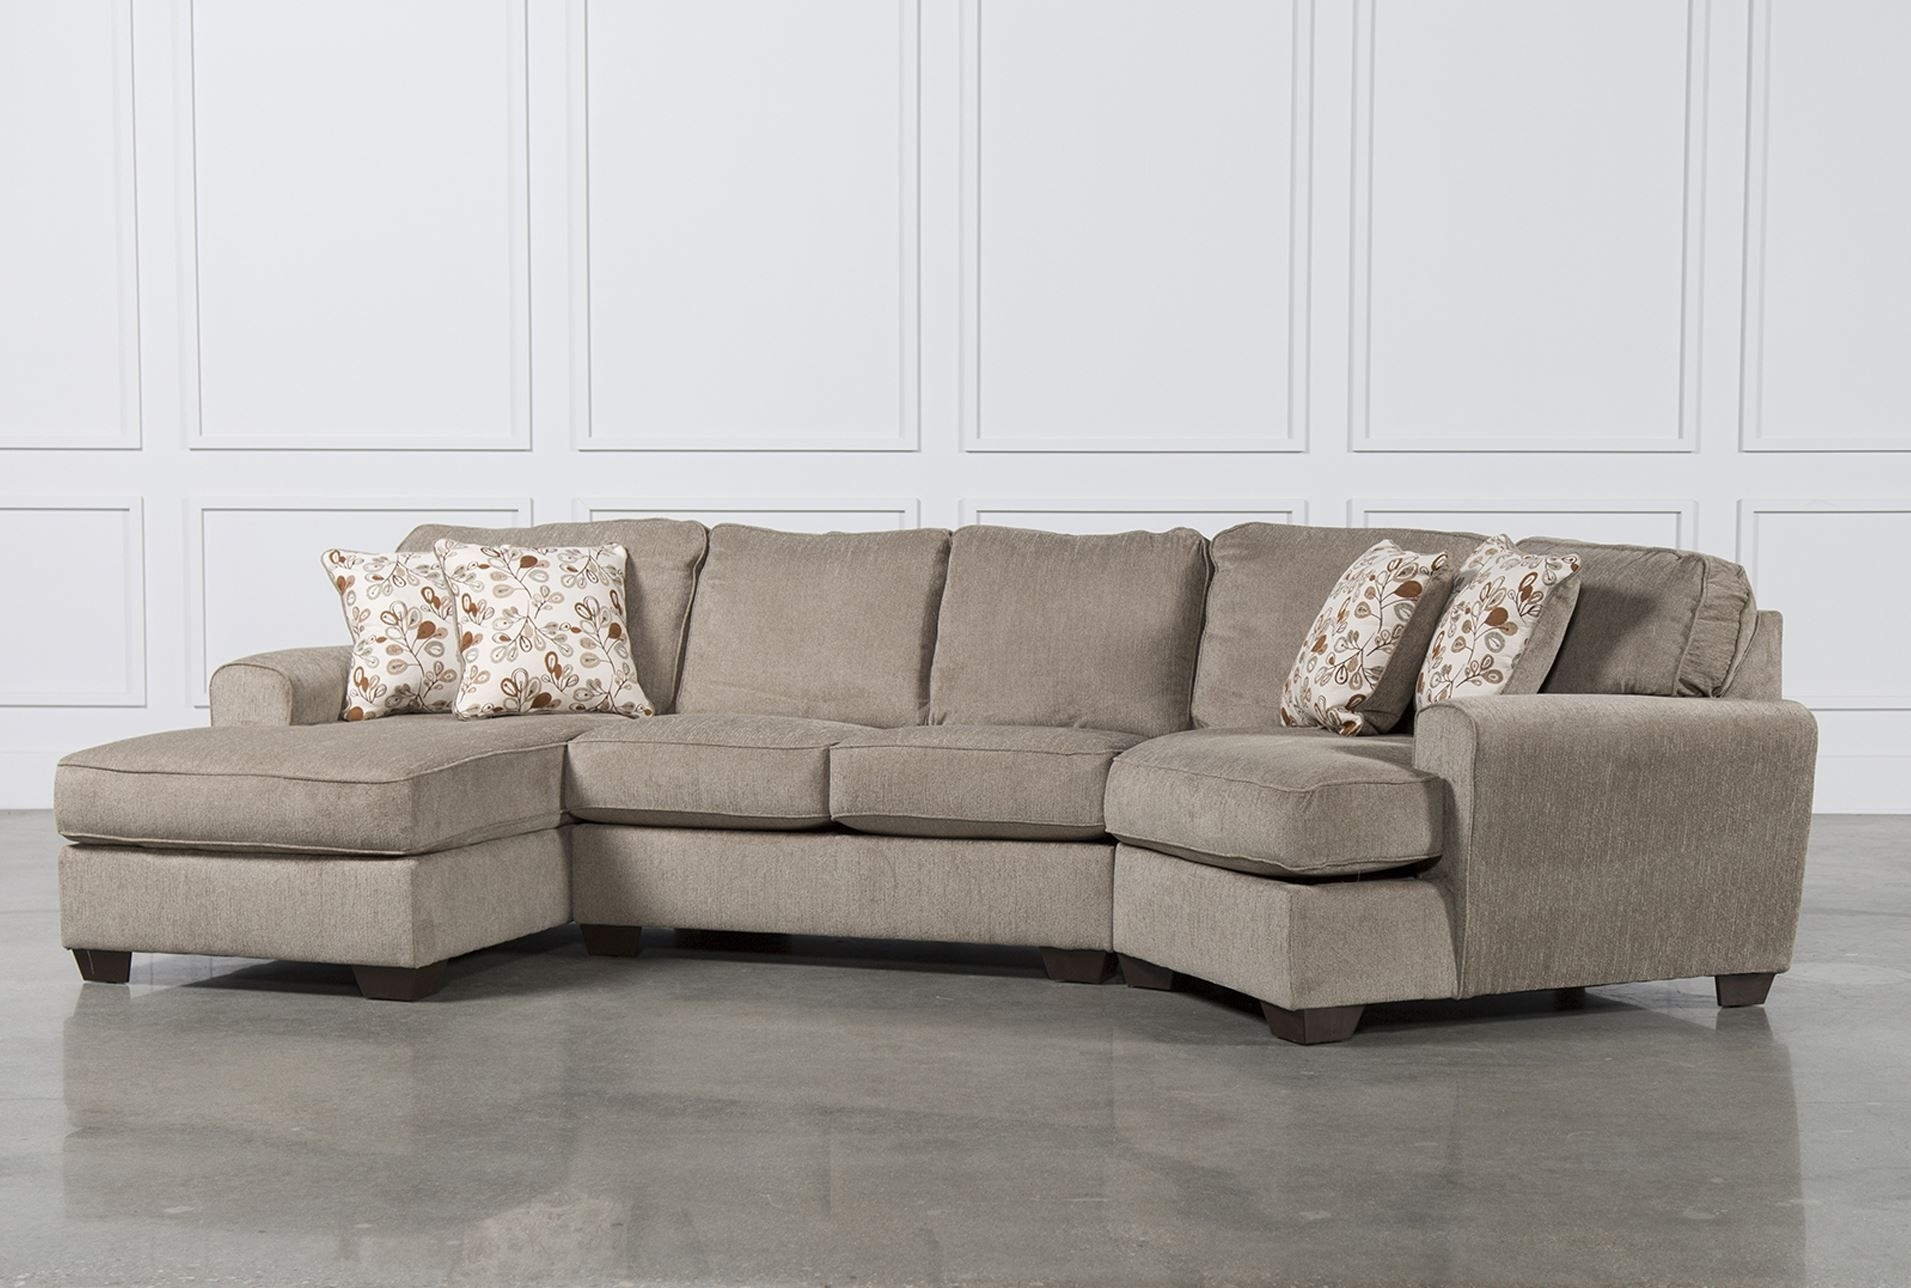 Patola Park 3 Piece Cuddler Sectional W/laf Corner Chaise With Regard To Sierra Down 3 Piece Sectionals With Laf Chaise (View 6 of 25)